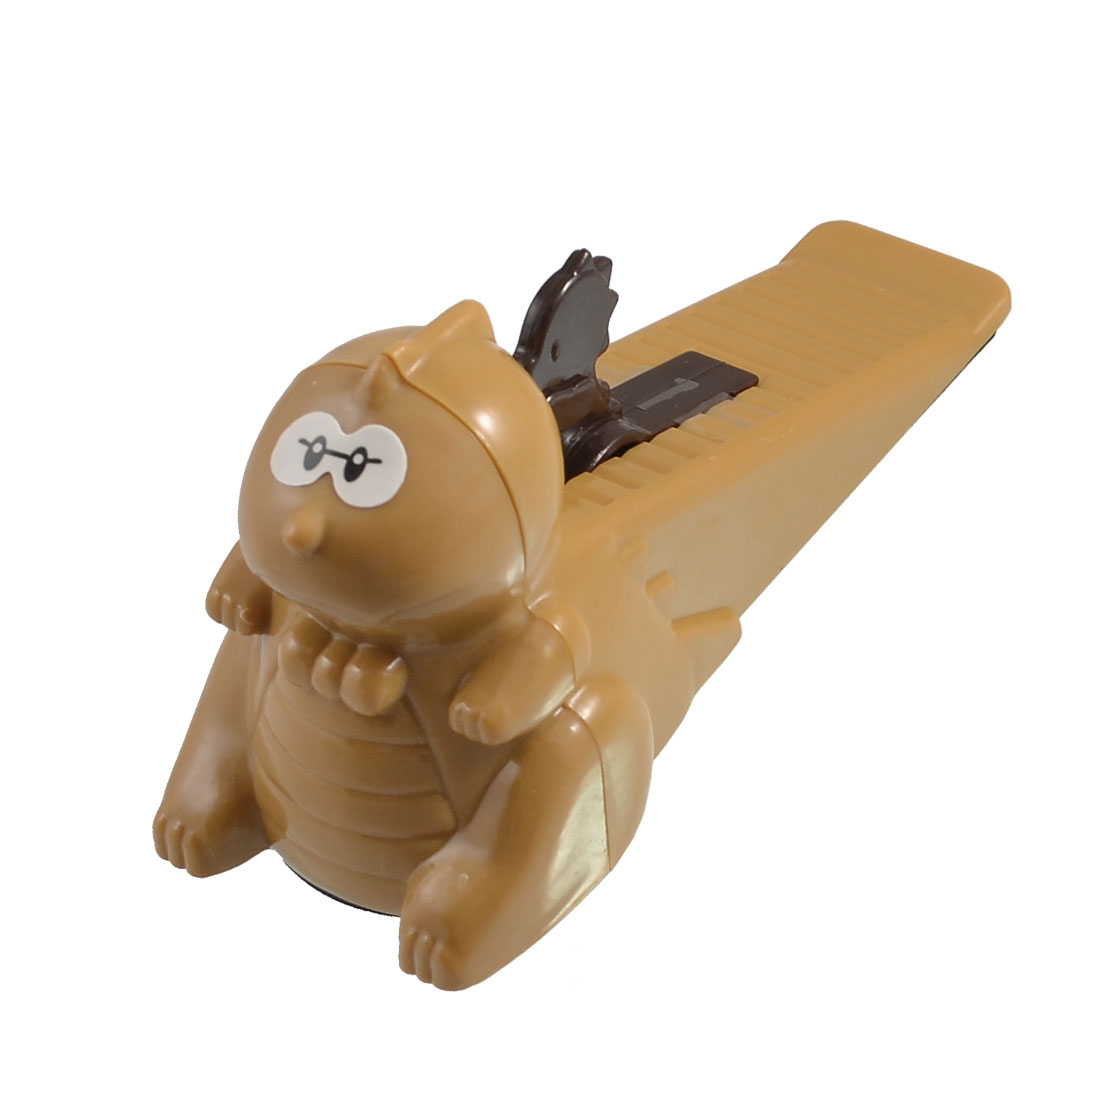 Household Cartoon Animal Shaped Brown Plastic Door Stopper Doorstop